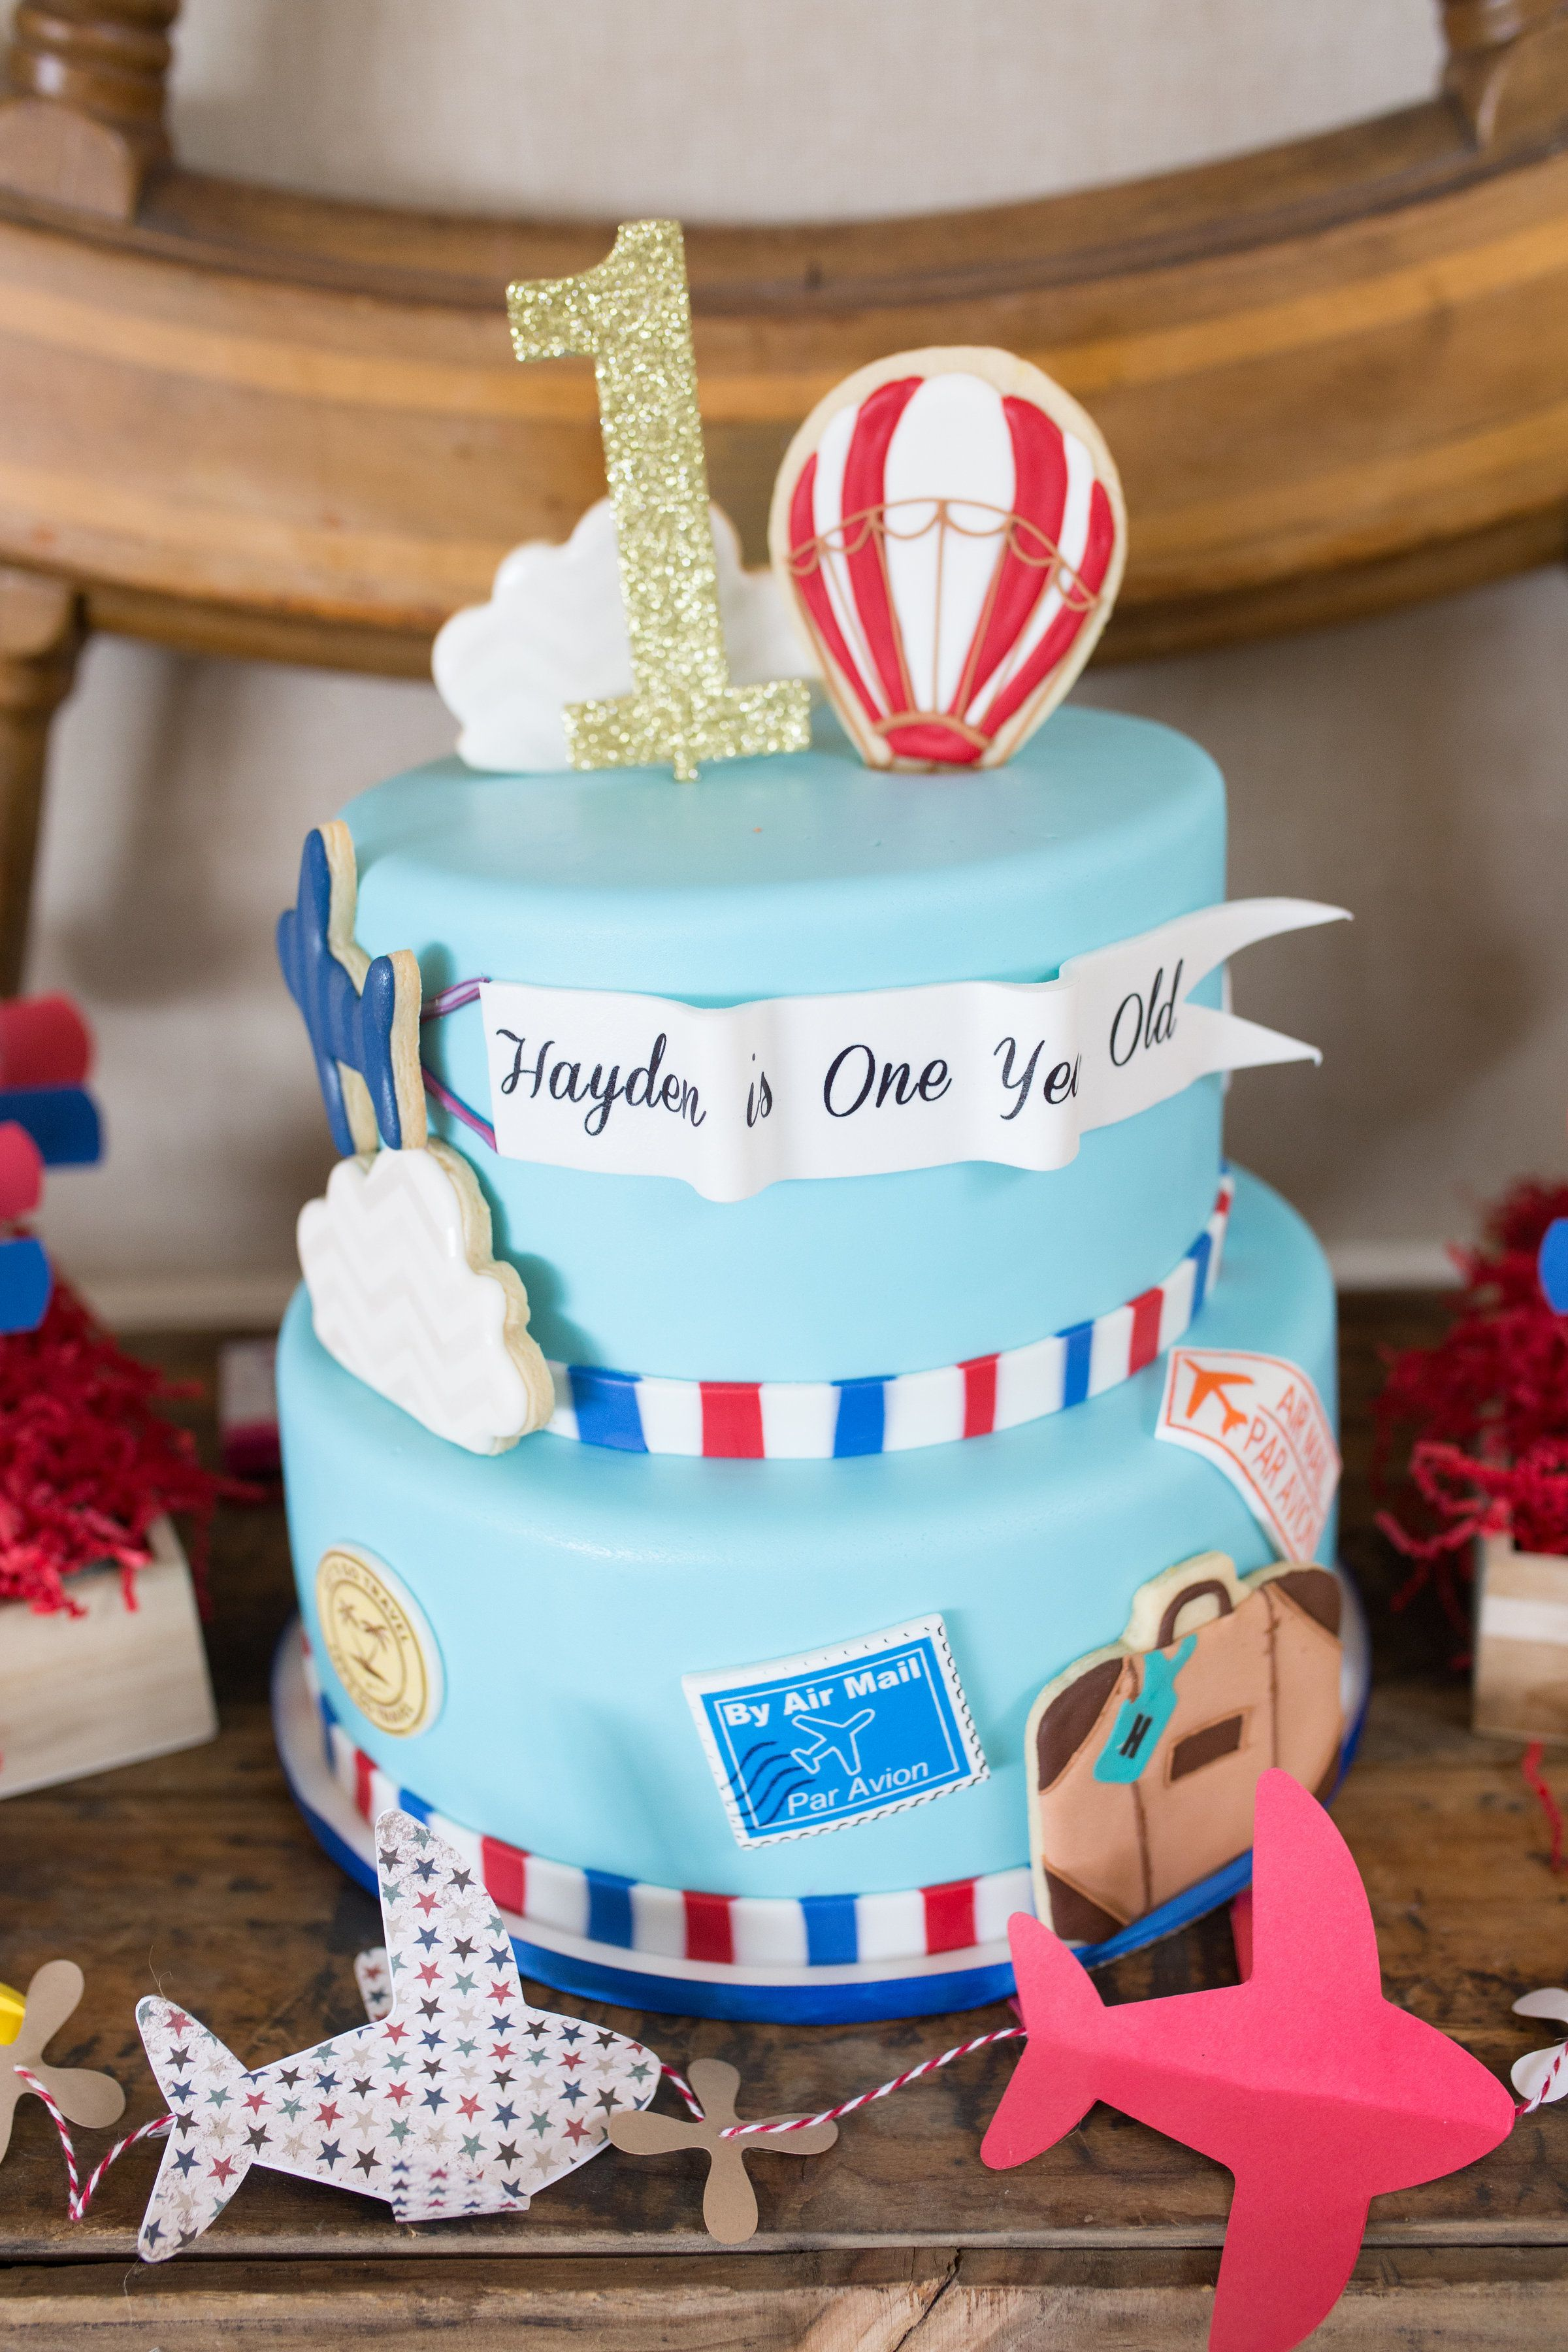 Uncategorized Vintage Themed Birthday Party up and away an amazing first birthday party with a travel theme ideas for boys vintage cake design